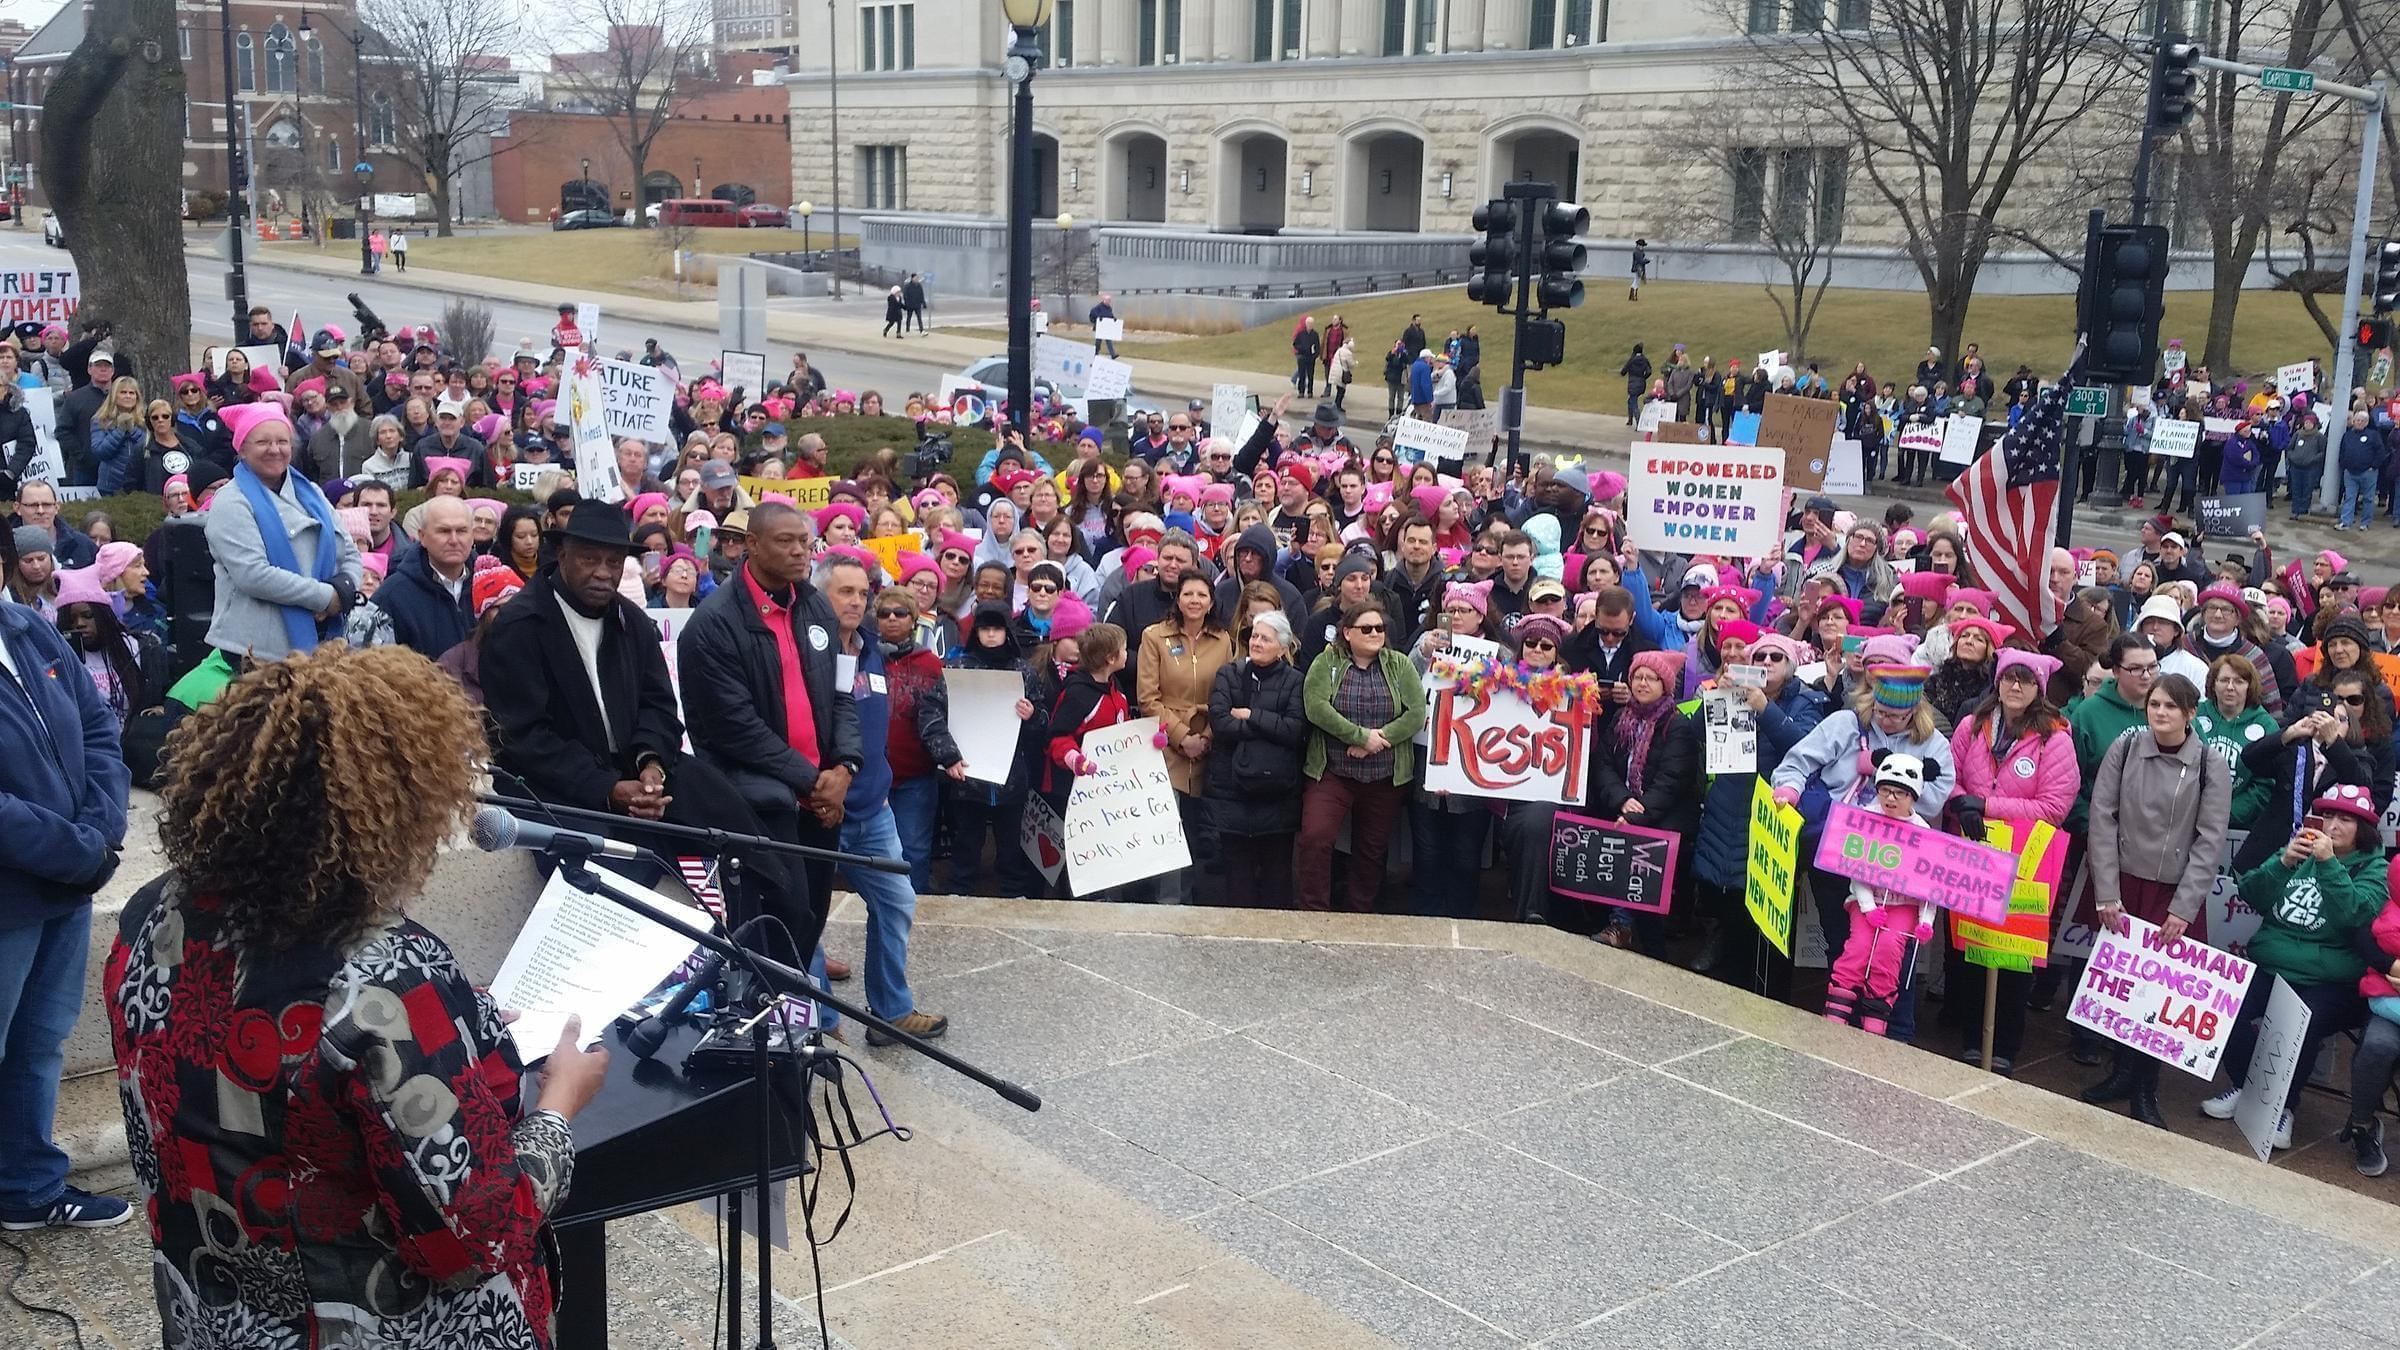 In January about 1,000 people convened in Springfield for the second annual Women's March. This year's focus was getting out the vote.